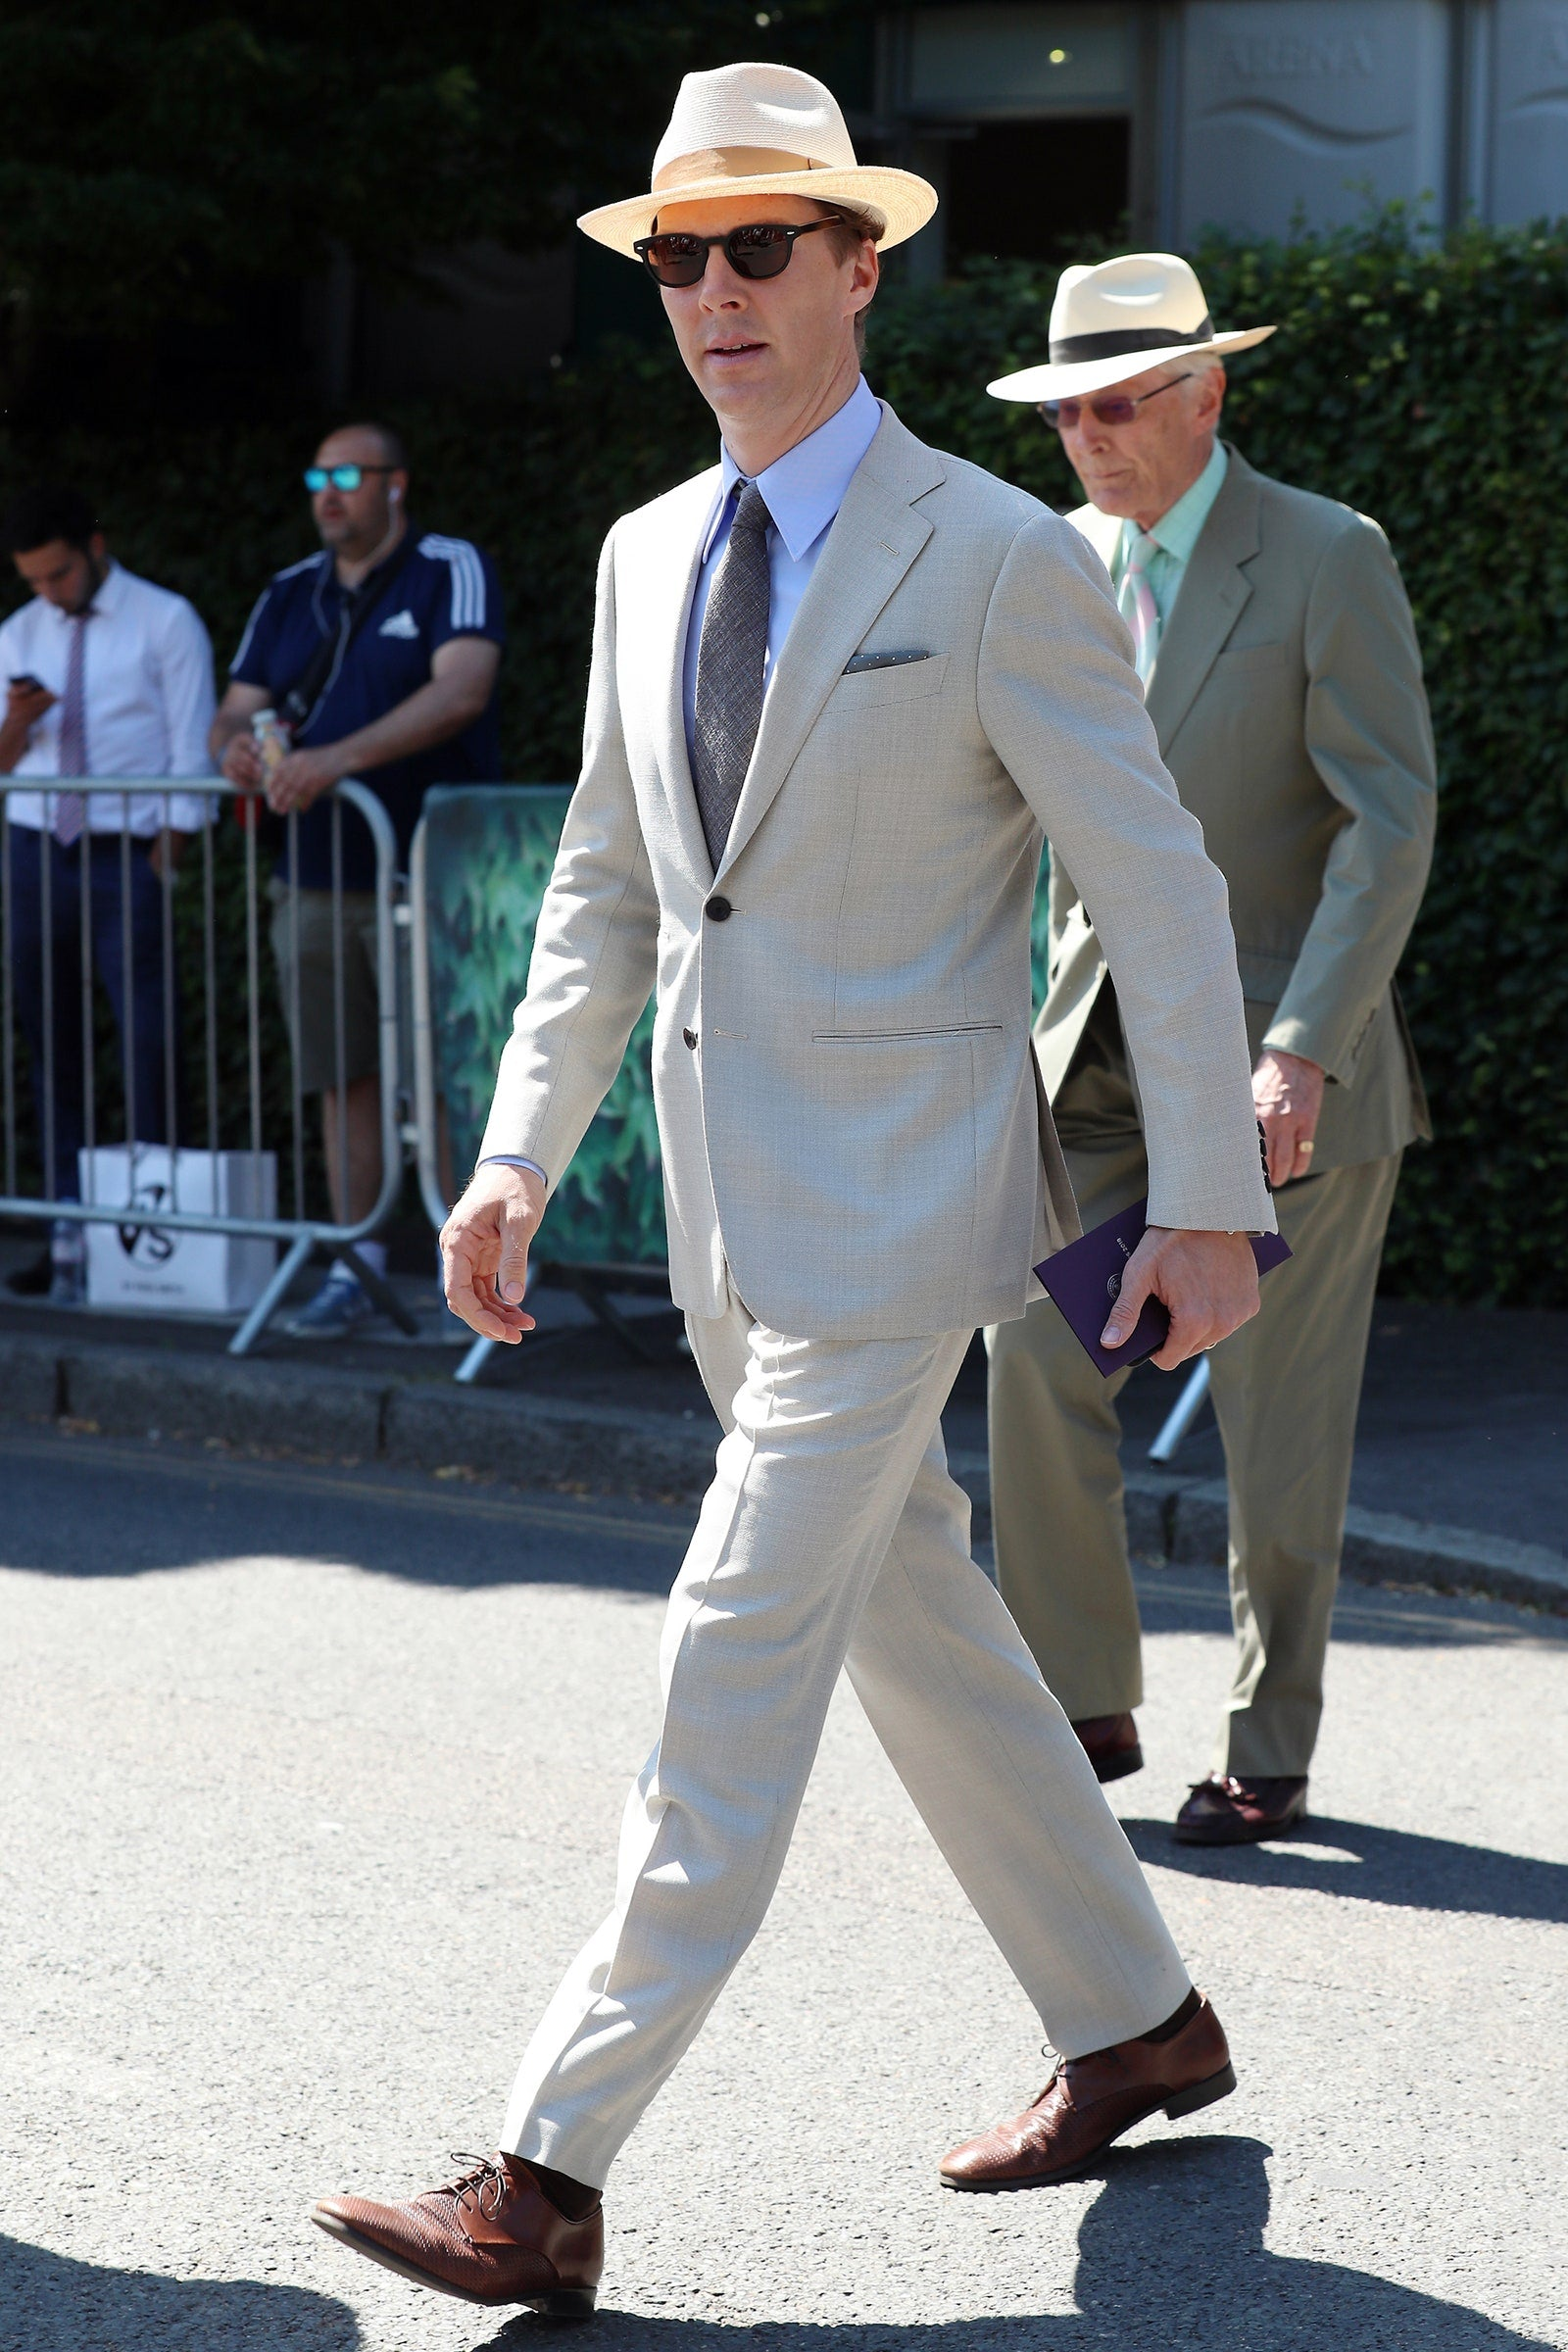 Benedict Cumberbatch in light grey suit, white hat and stylish sunglasses